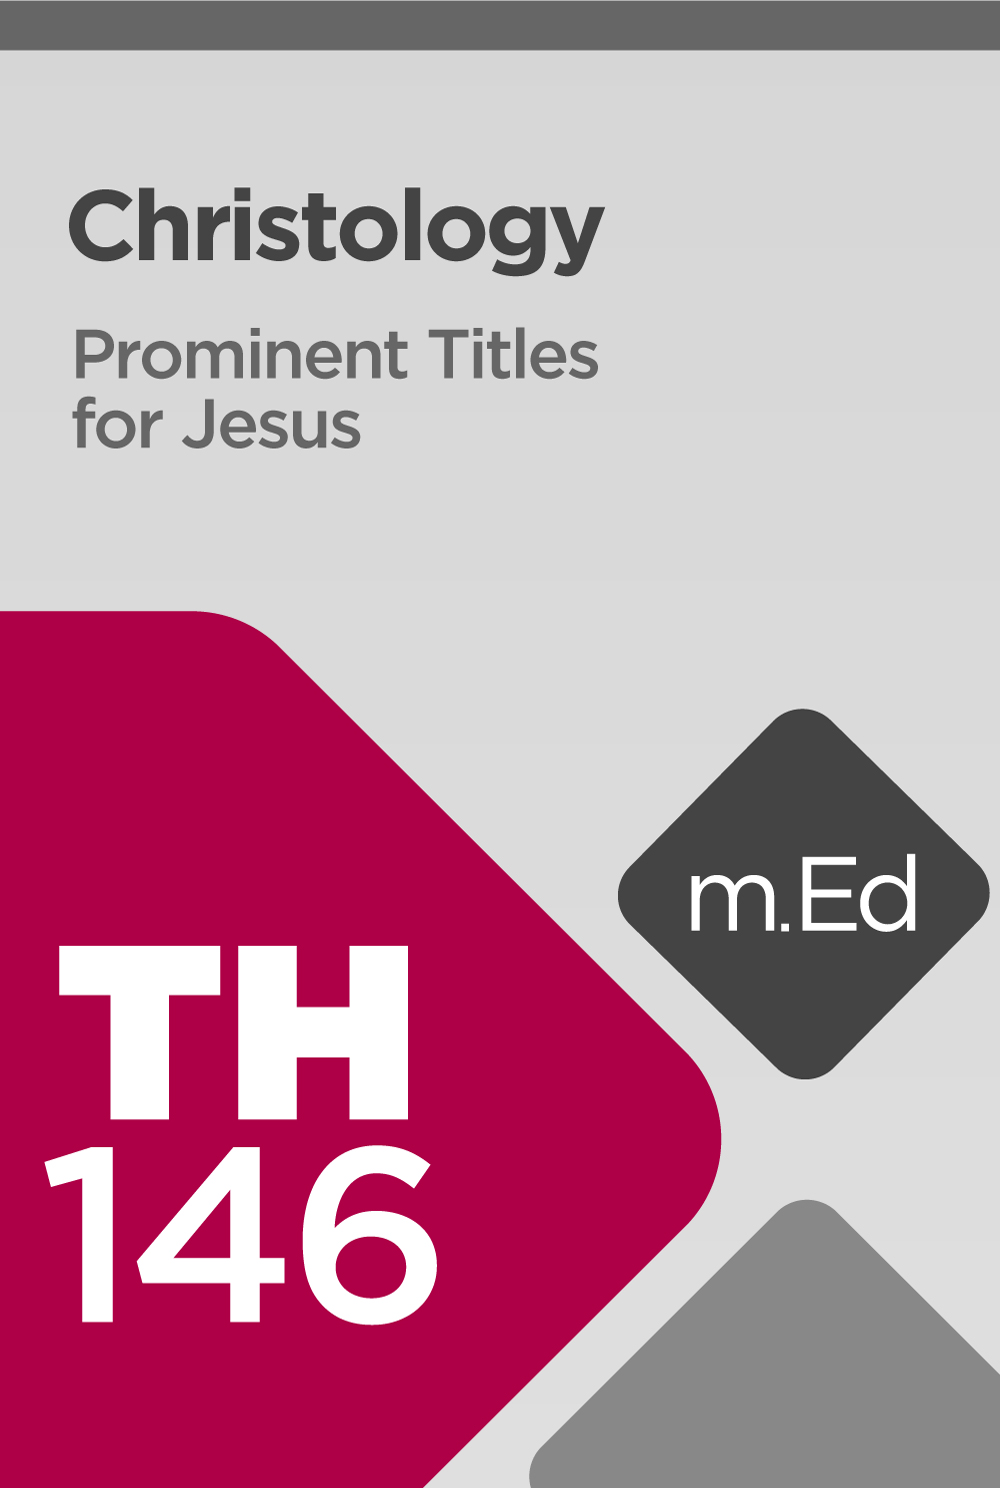 Mobile Ed: TH146 Christology: Prominent Titles for Jesus (2 hour course)